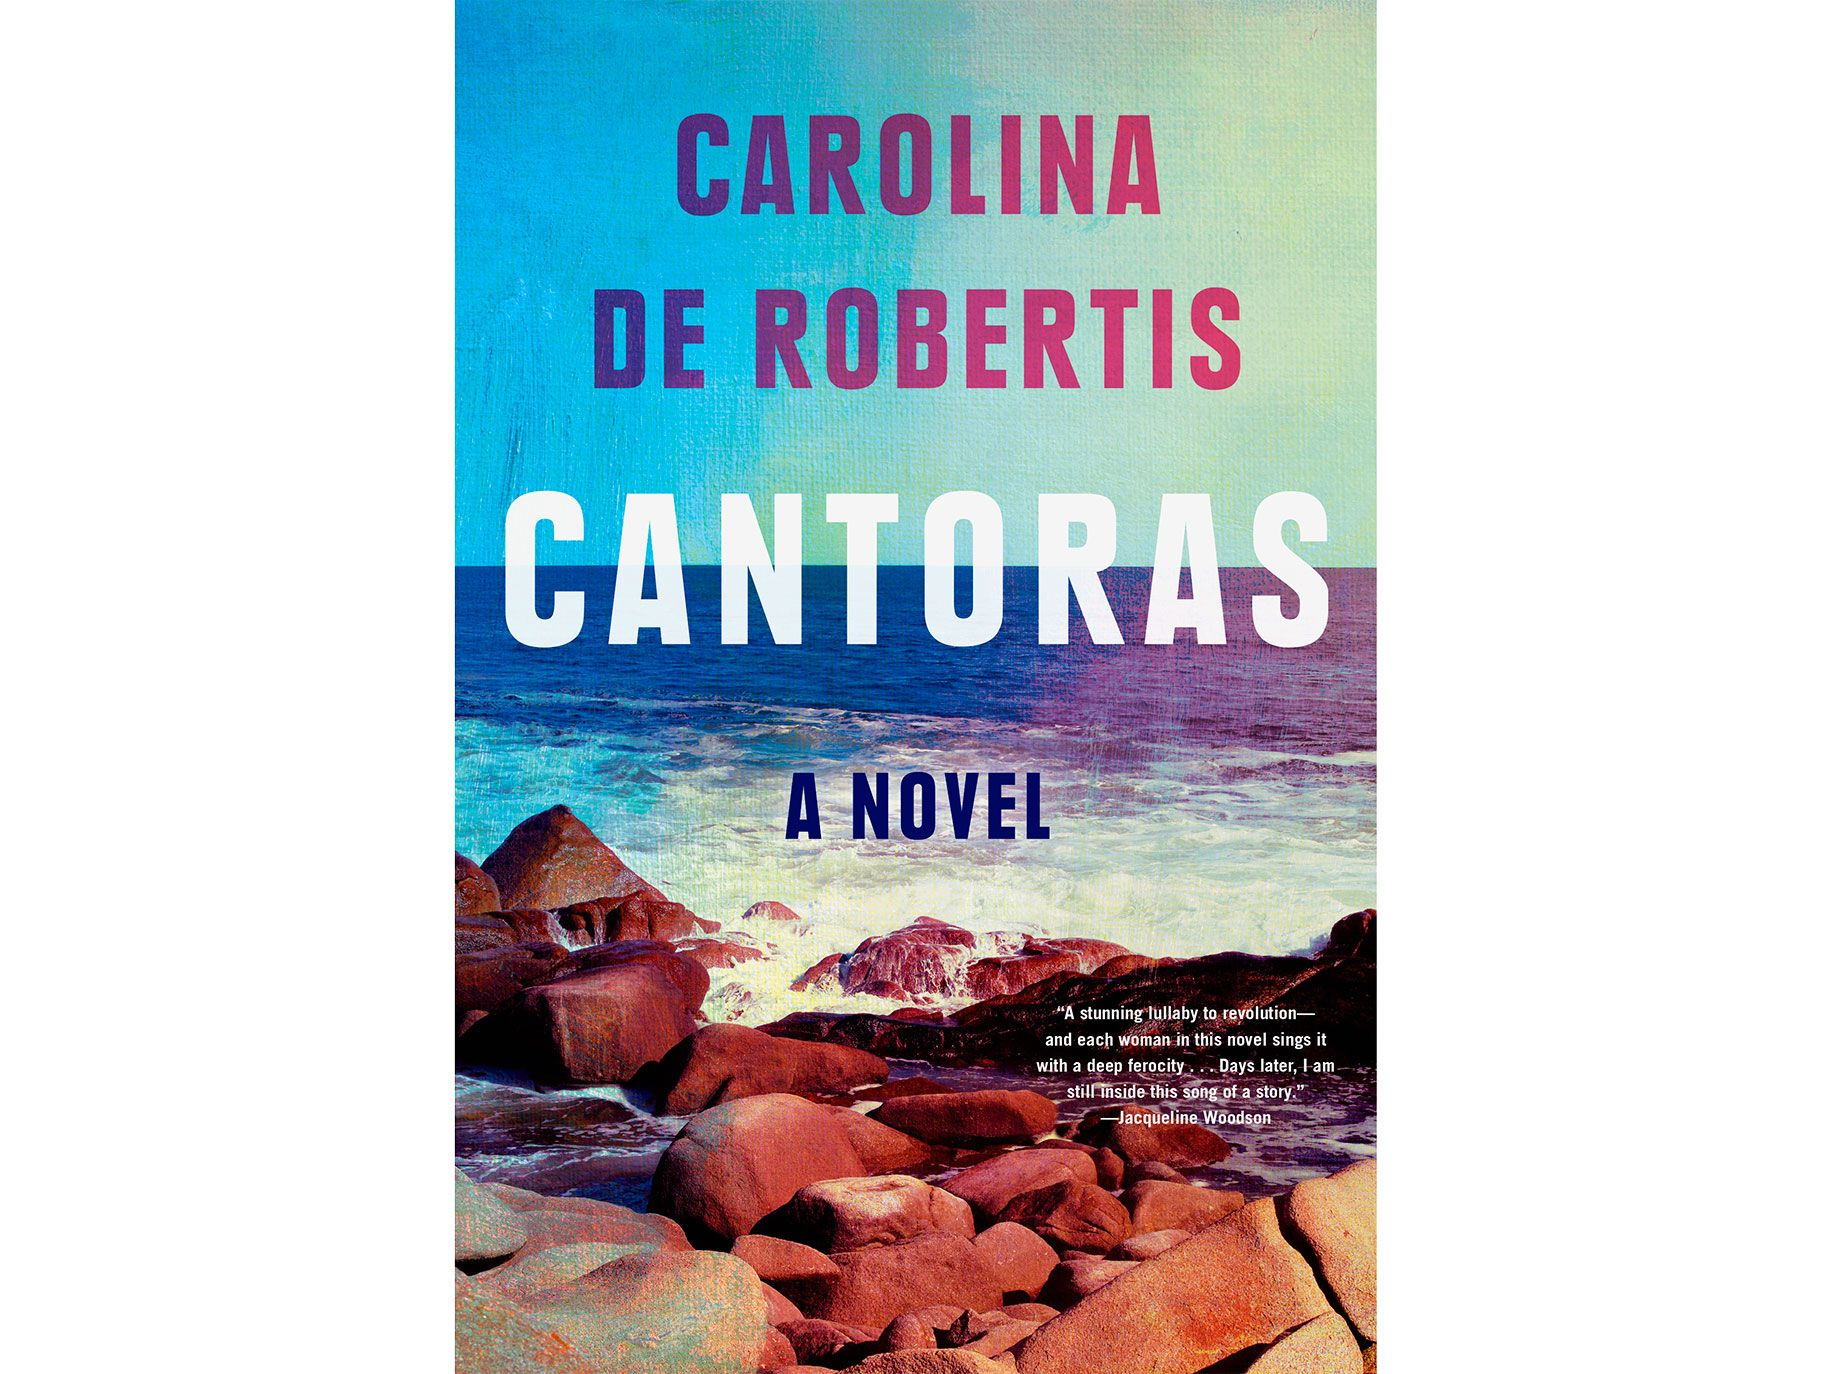 Cantoras by Carolina De Robertis, Alfred A. Knopf, 336 pages, $26.95